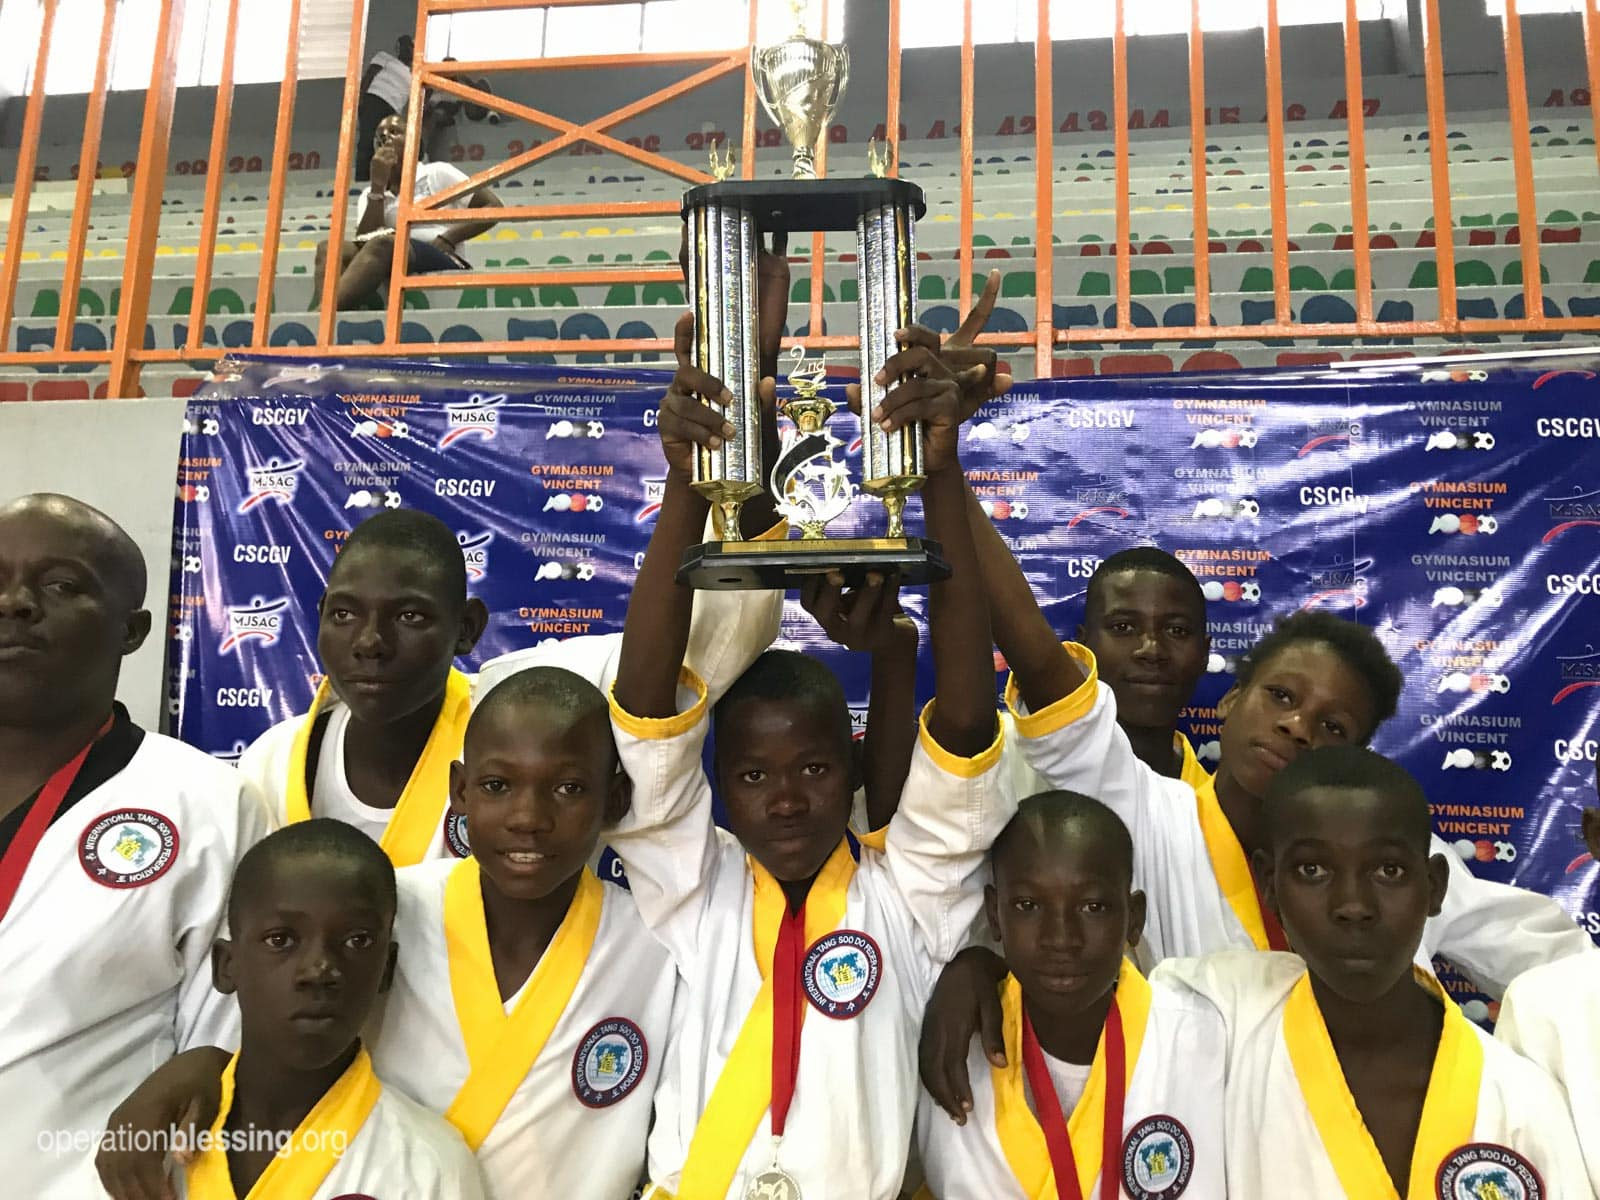 Students in the Tang Soo Do program won several awards at nationals in Haiti. This is just one of many extracurricular programs changing lives.